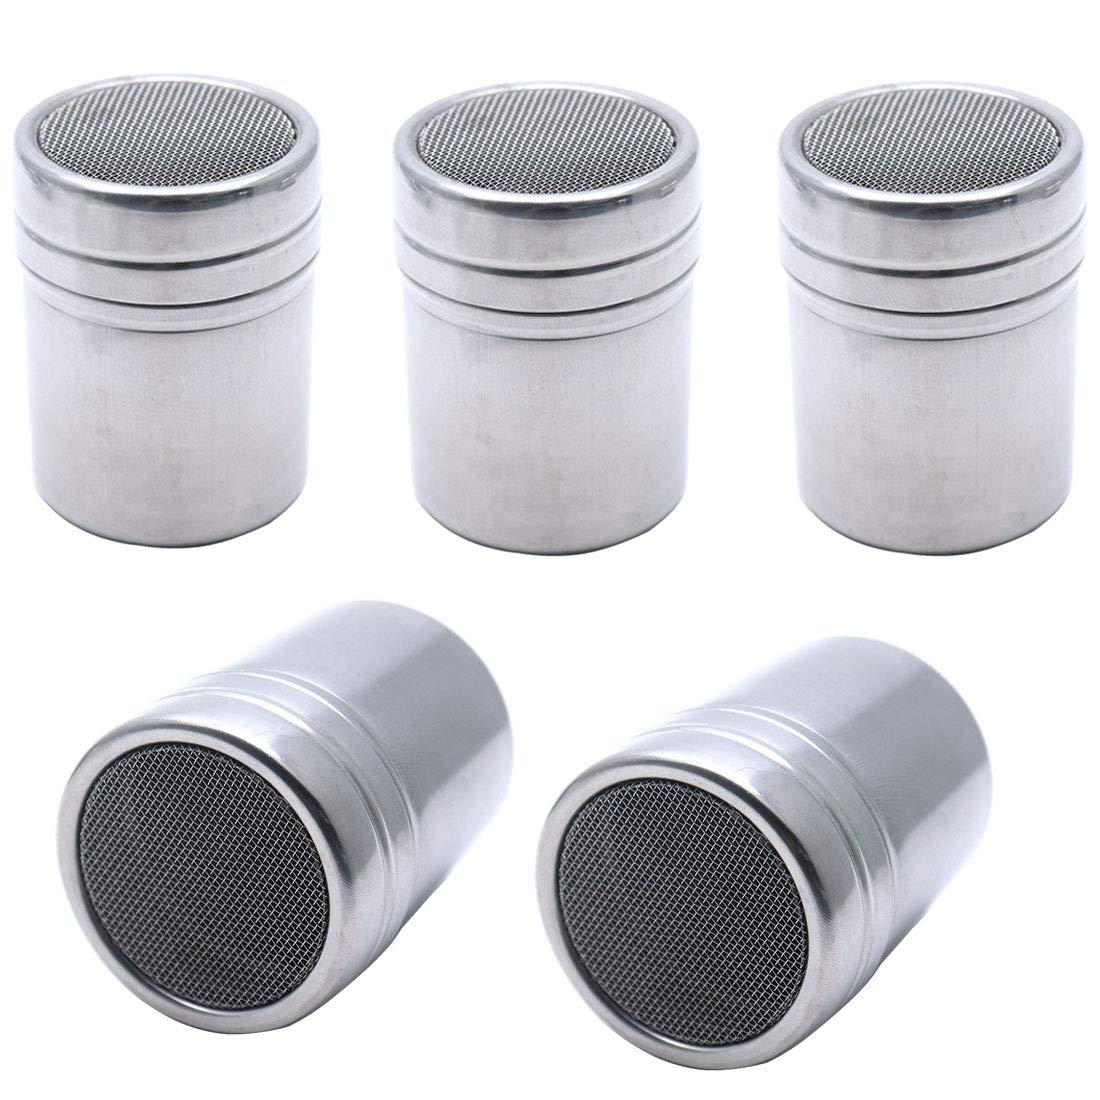 Sscon 5-Pieces Stainless Steel Powder Sugar Shaker with Lid Fine Mesh Chocolate Icing Sugar Cocoa Flour Coffee Sifter (2.28 x 3.87 inch) by Sscon